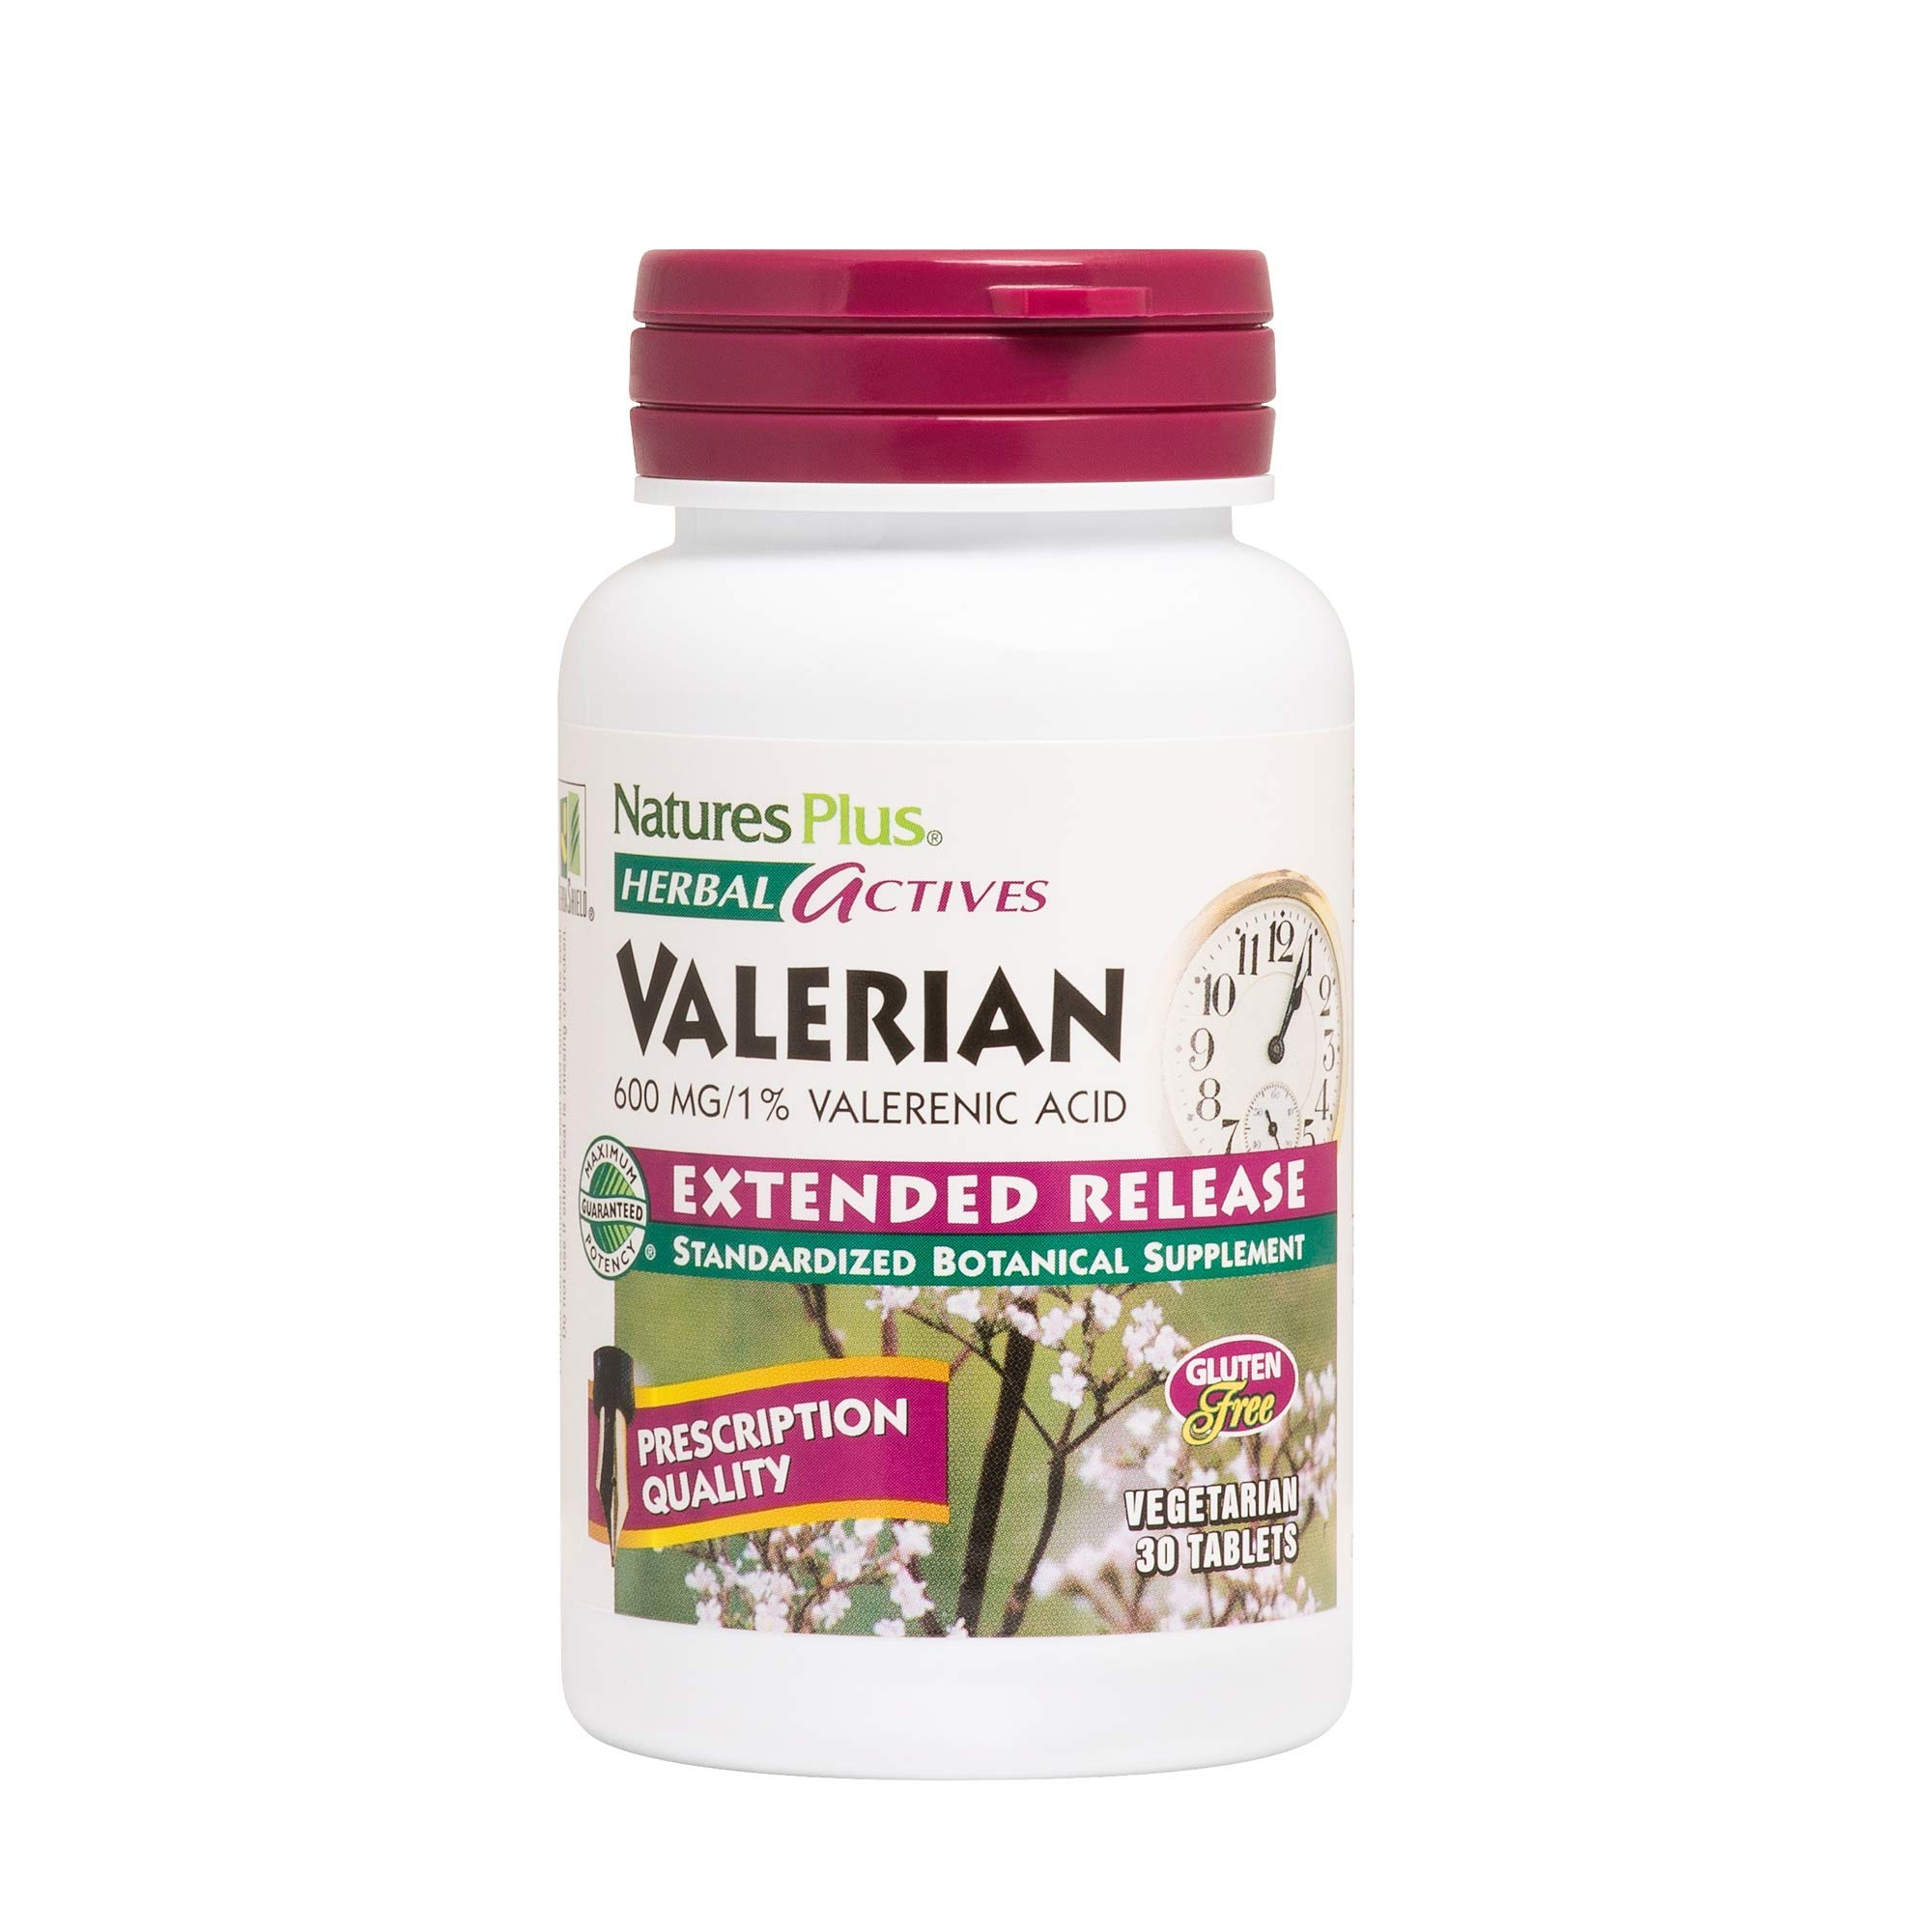 NaturesPlus Herbal Actives Valerian Extended Release Tablets - 600 mg, 30 Vegan Tablets - Natural Sleep Support Supplement - Vegetarian, Gluten-Free - 30 Servings by Nature's Plus